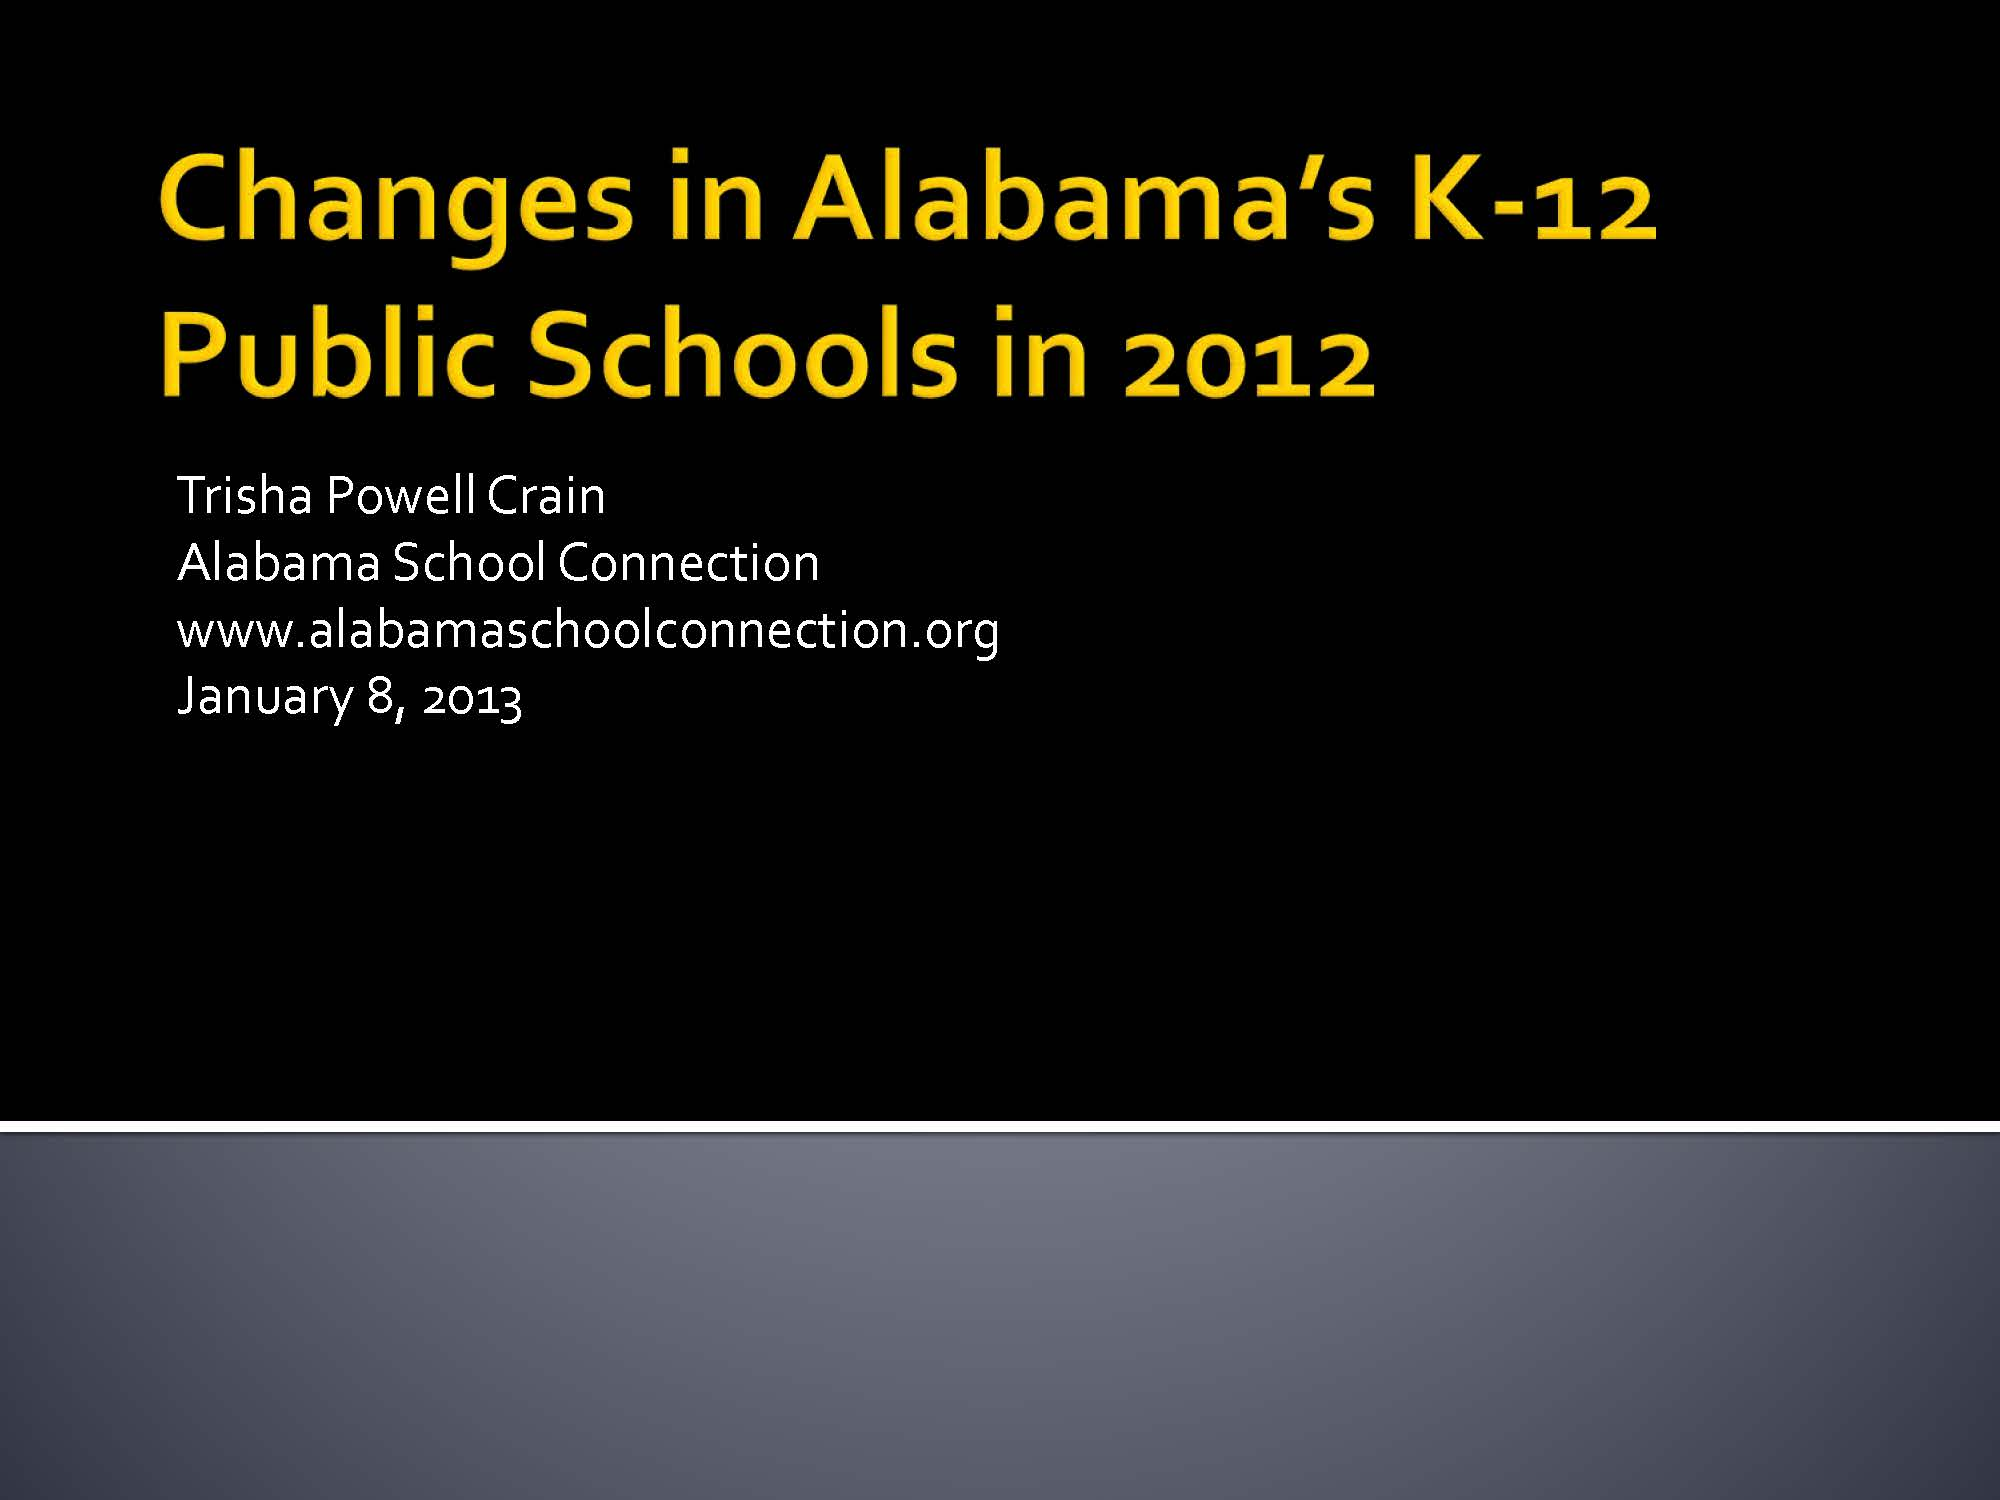 Pages from Color - Changes in Alabama's K-12 Public Schools in 2012